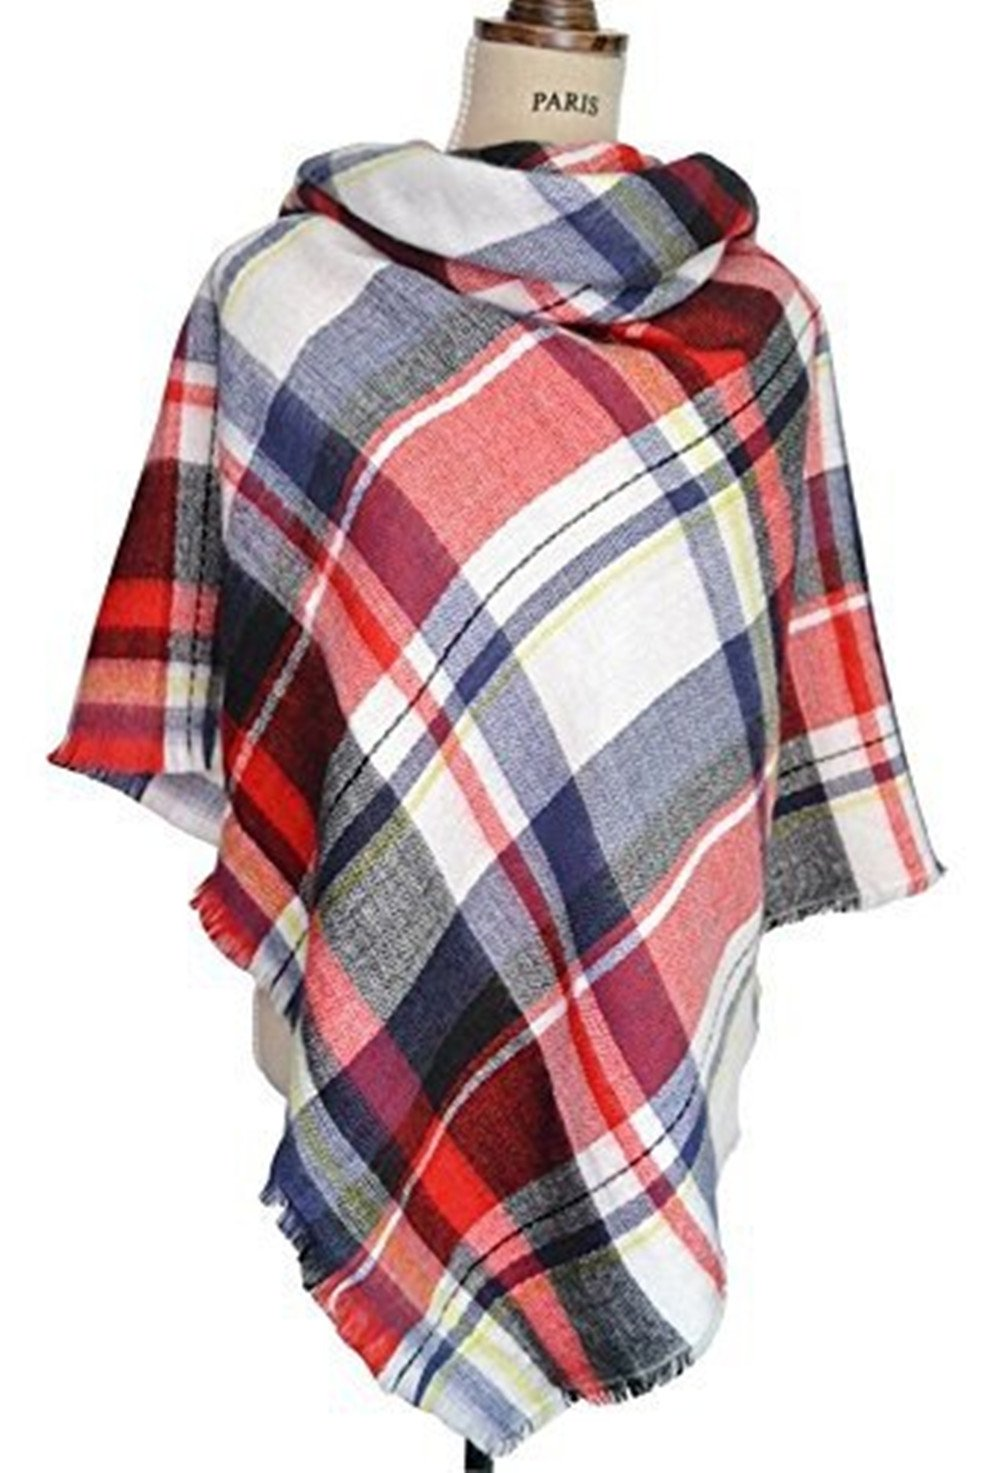 Spring Fever Plaid Checked Tartan Scarf Wrap Shawl(Red) MNSCAS0114A04FS